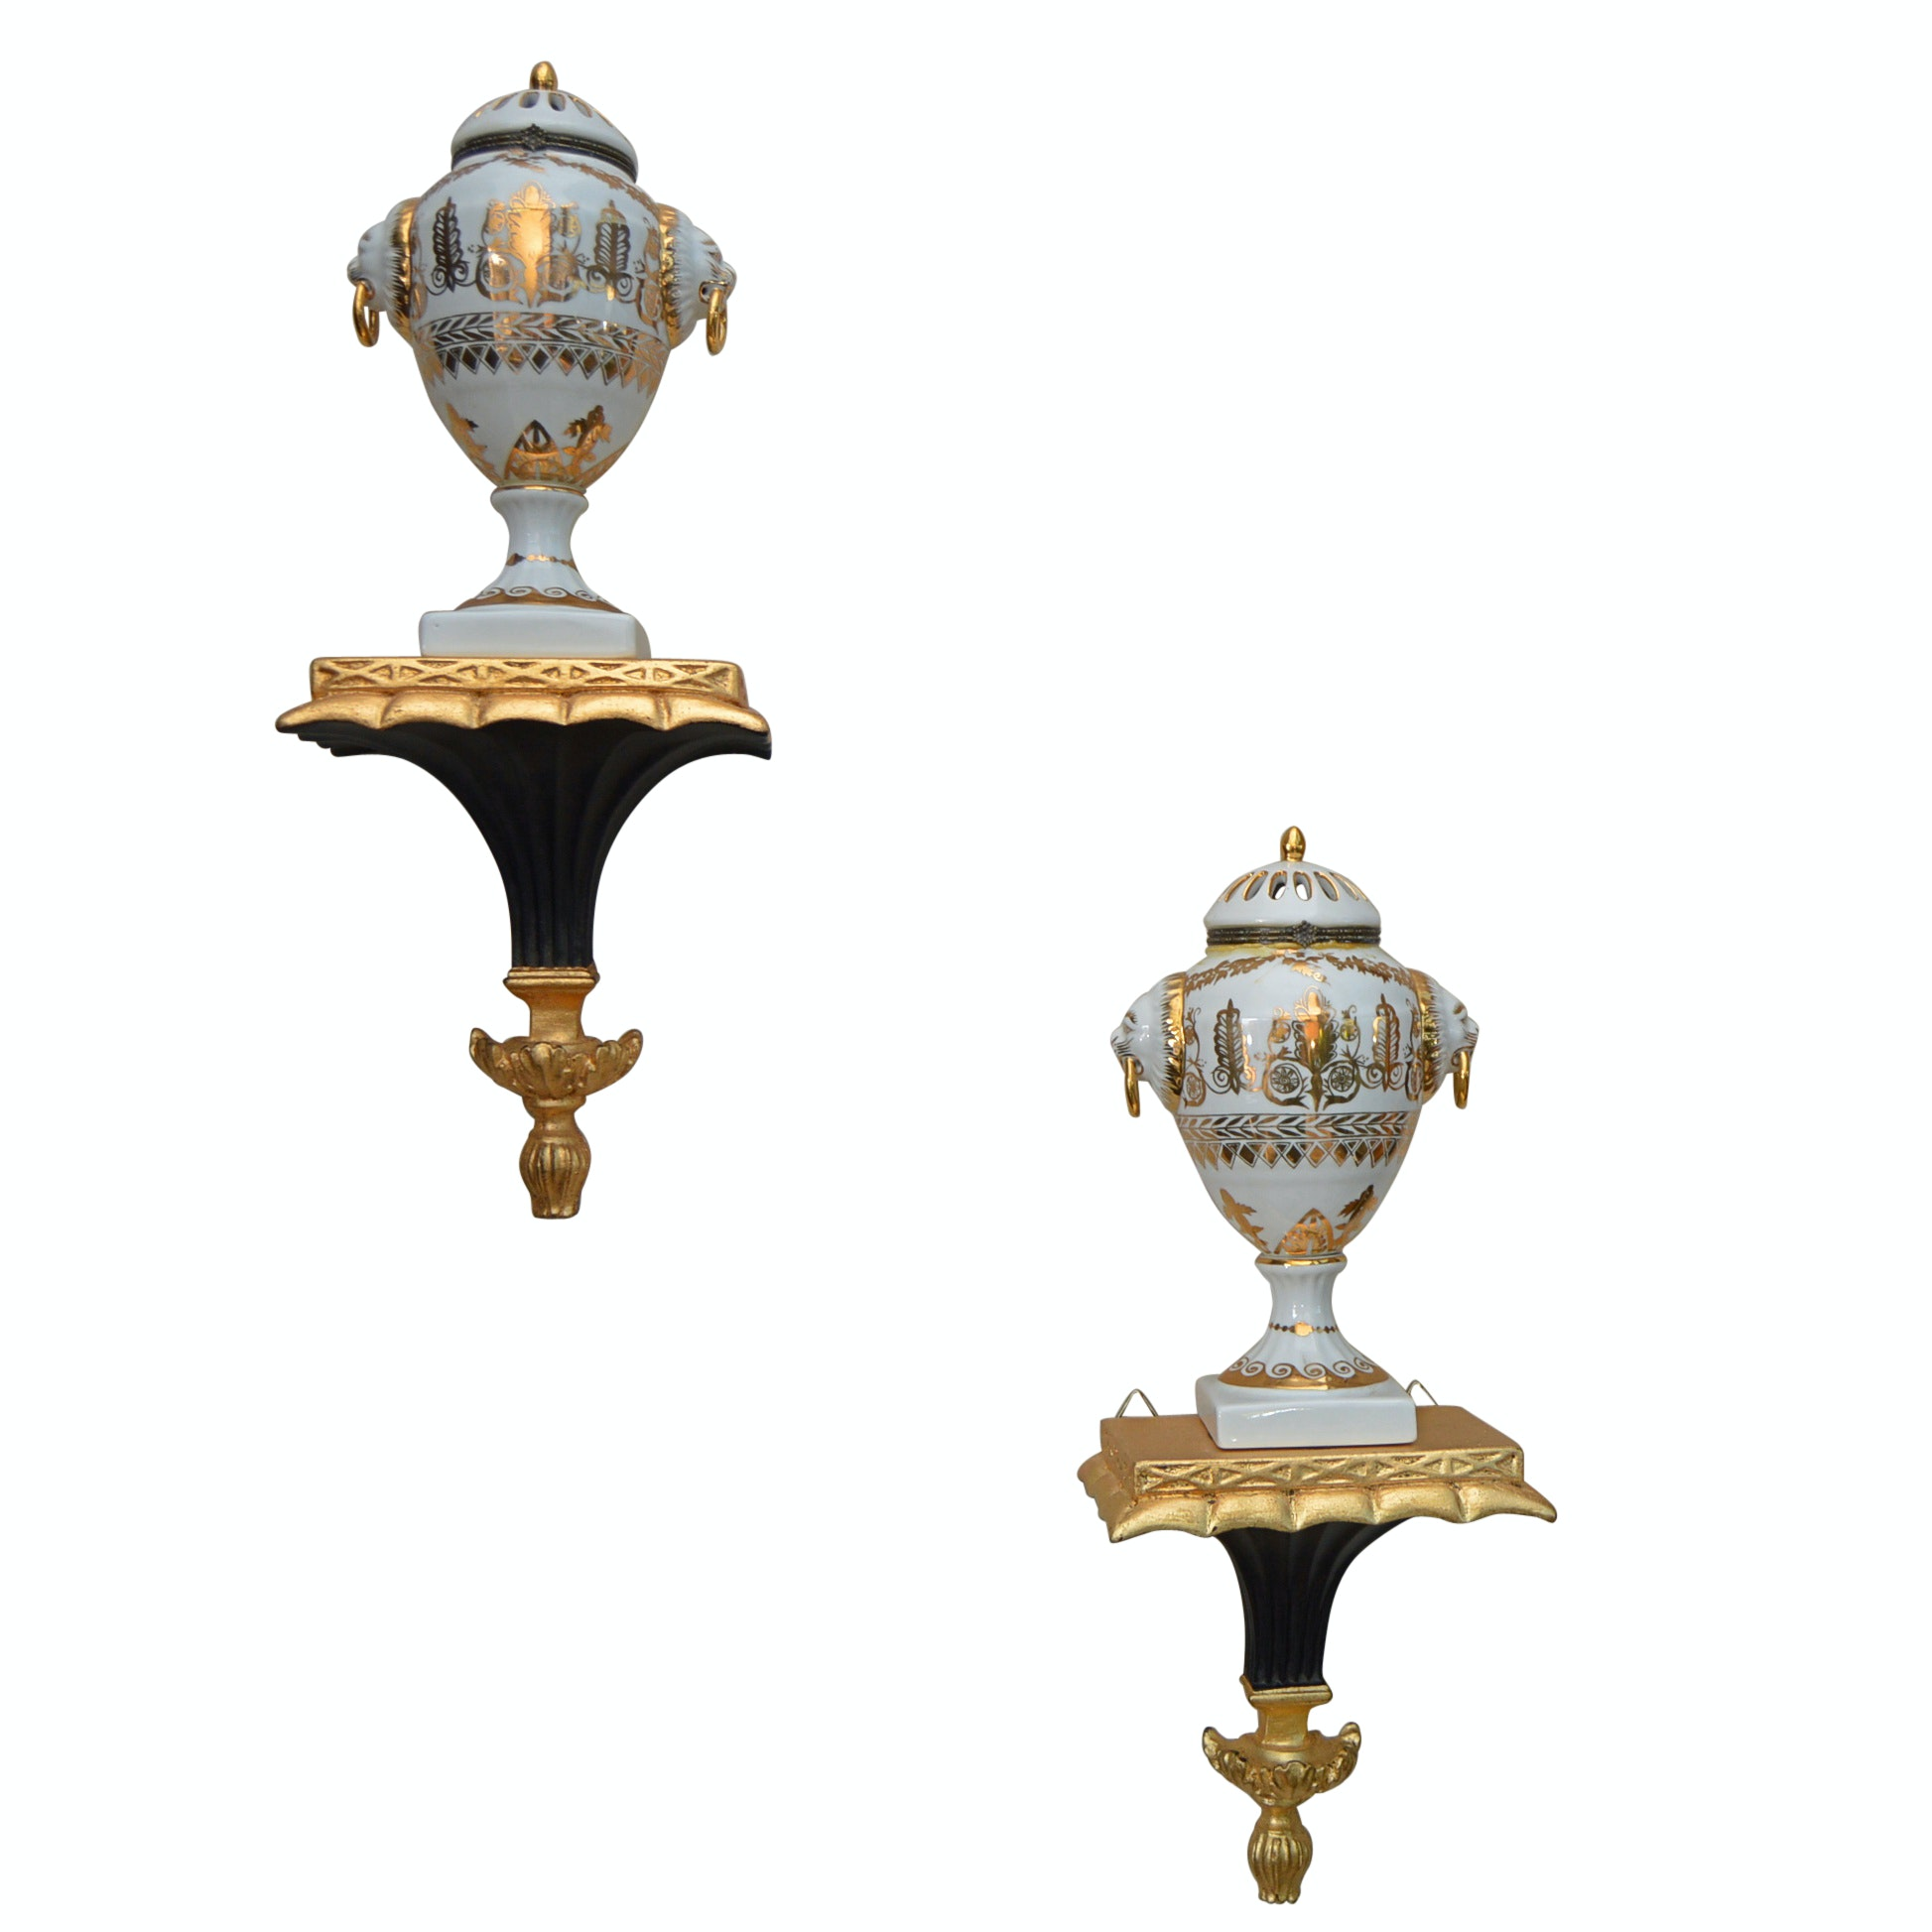 Jean Reed's Porcelain Urns with Black and Gold Neoclassical Corbels